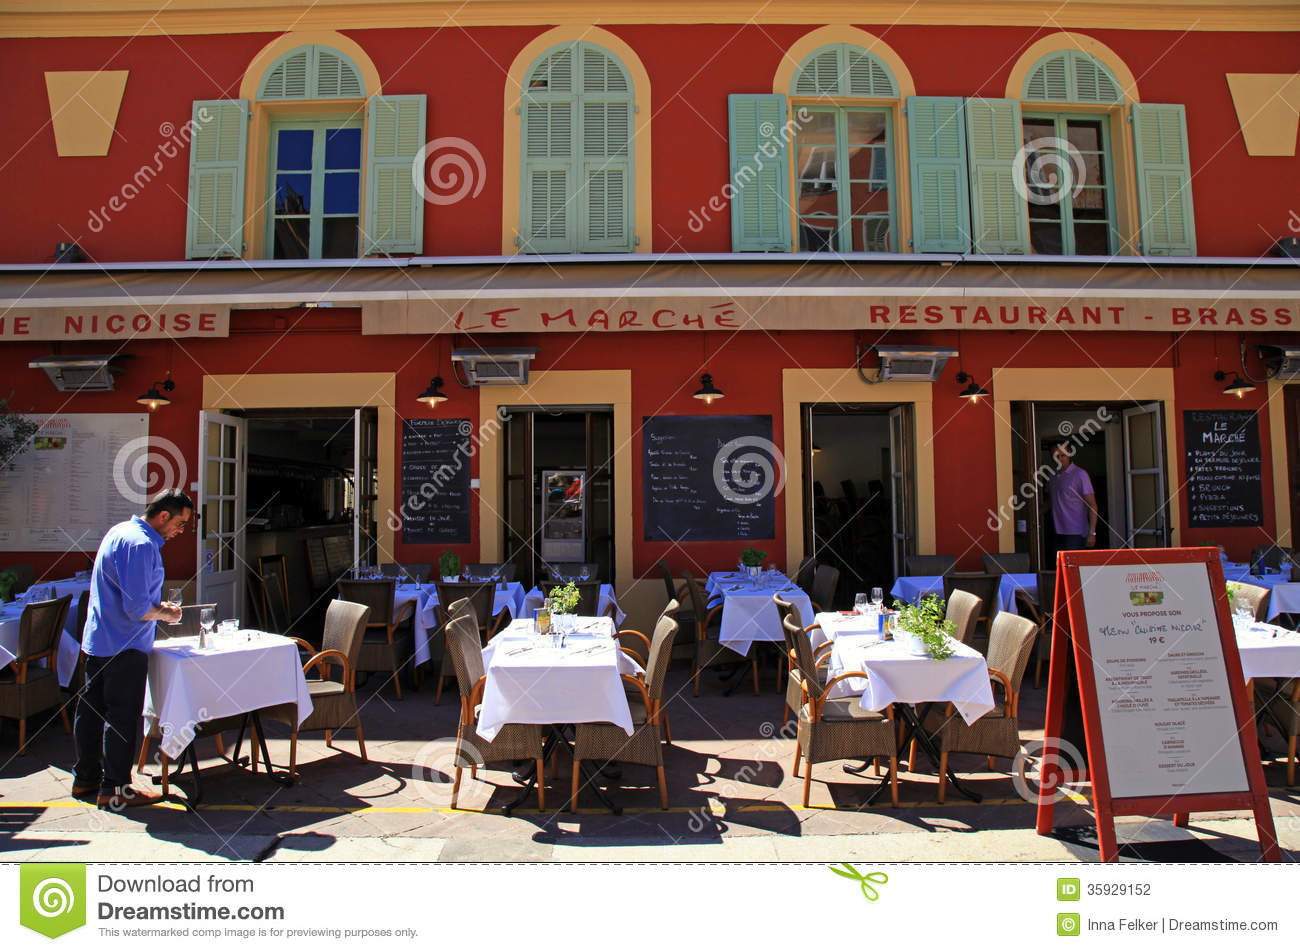 French restaurants on the cours saleya nice france for Restaurant cuisine nicoise nice